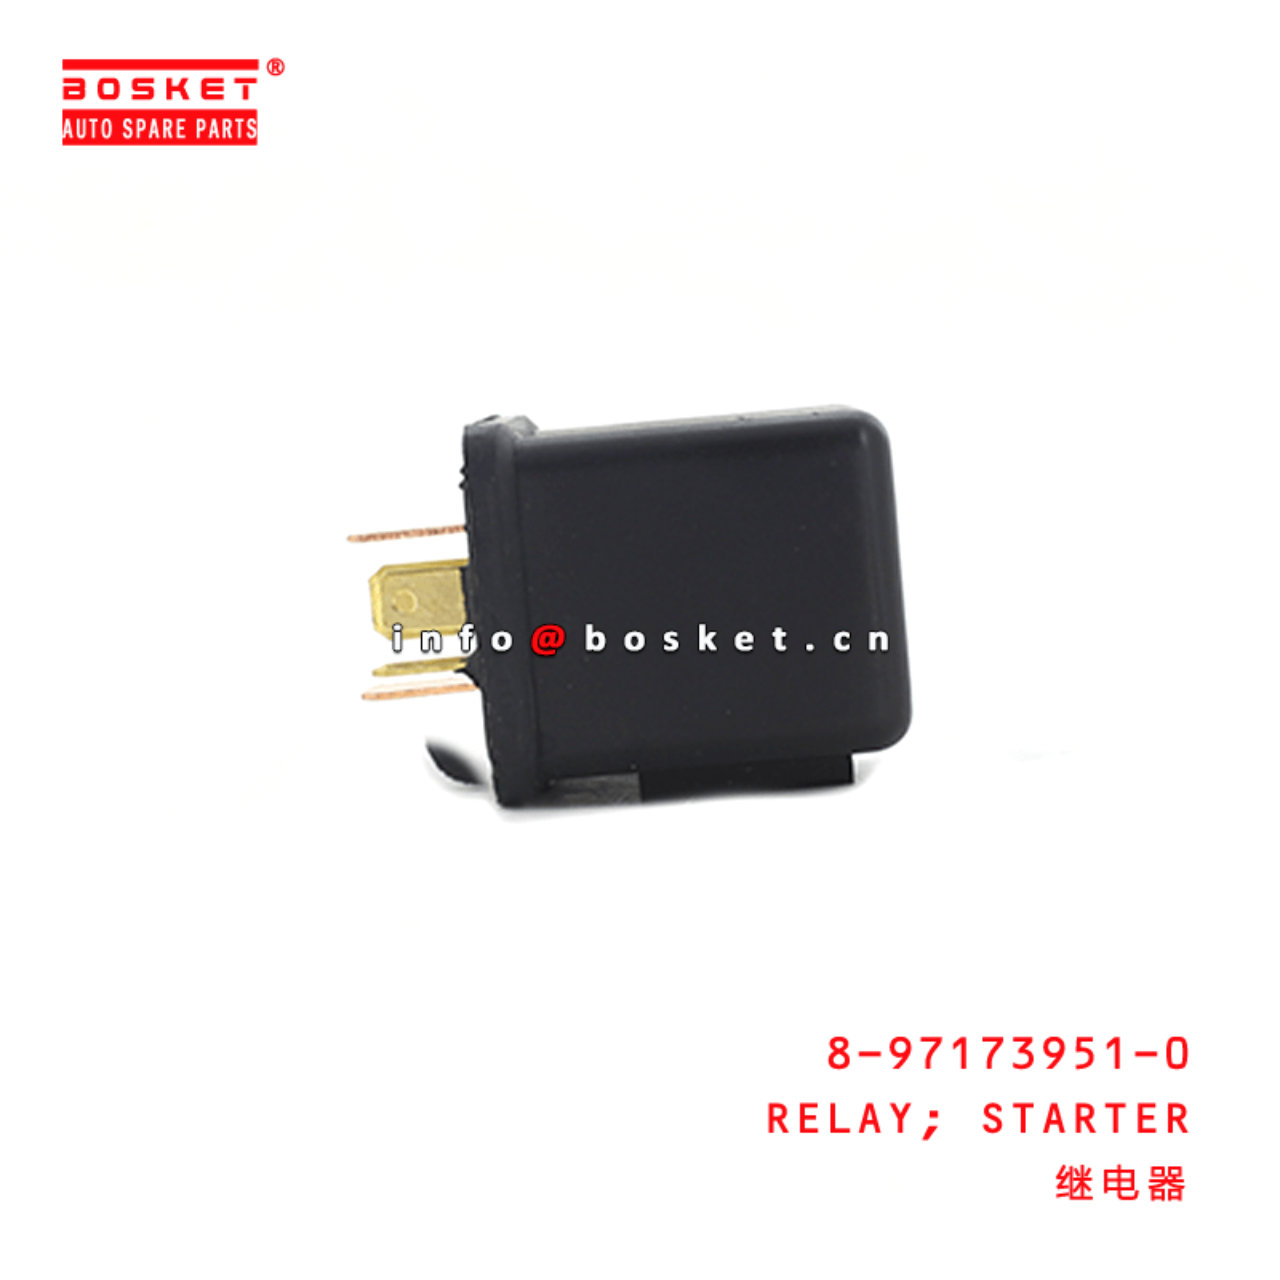 8-97173951-0 Starter Relay 8971739510 Suitable for...